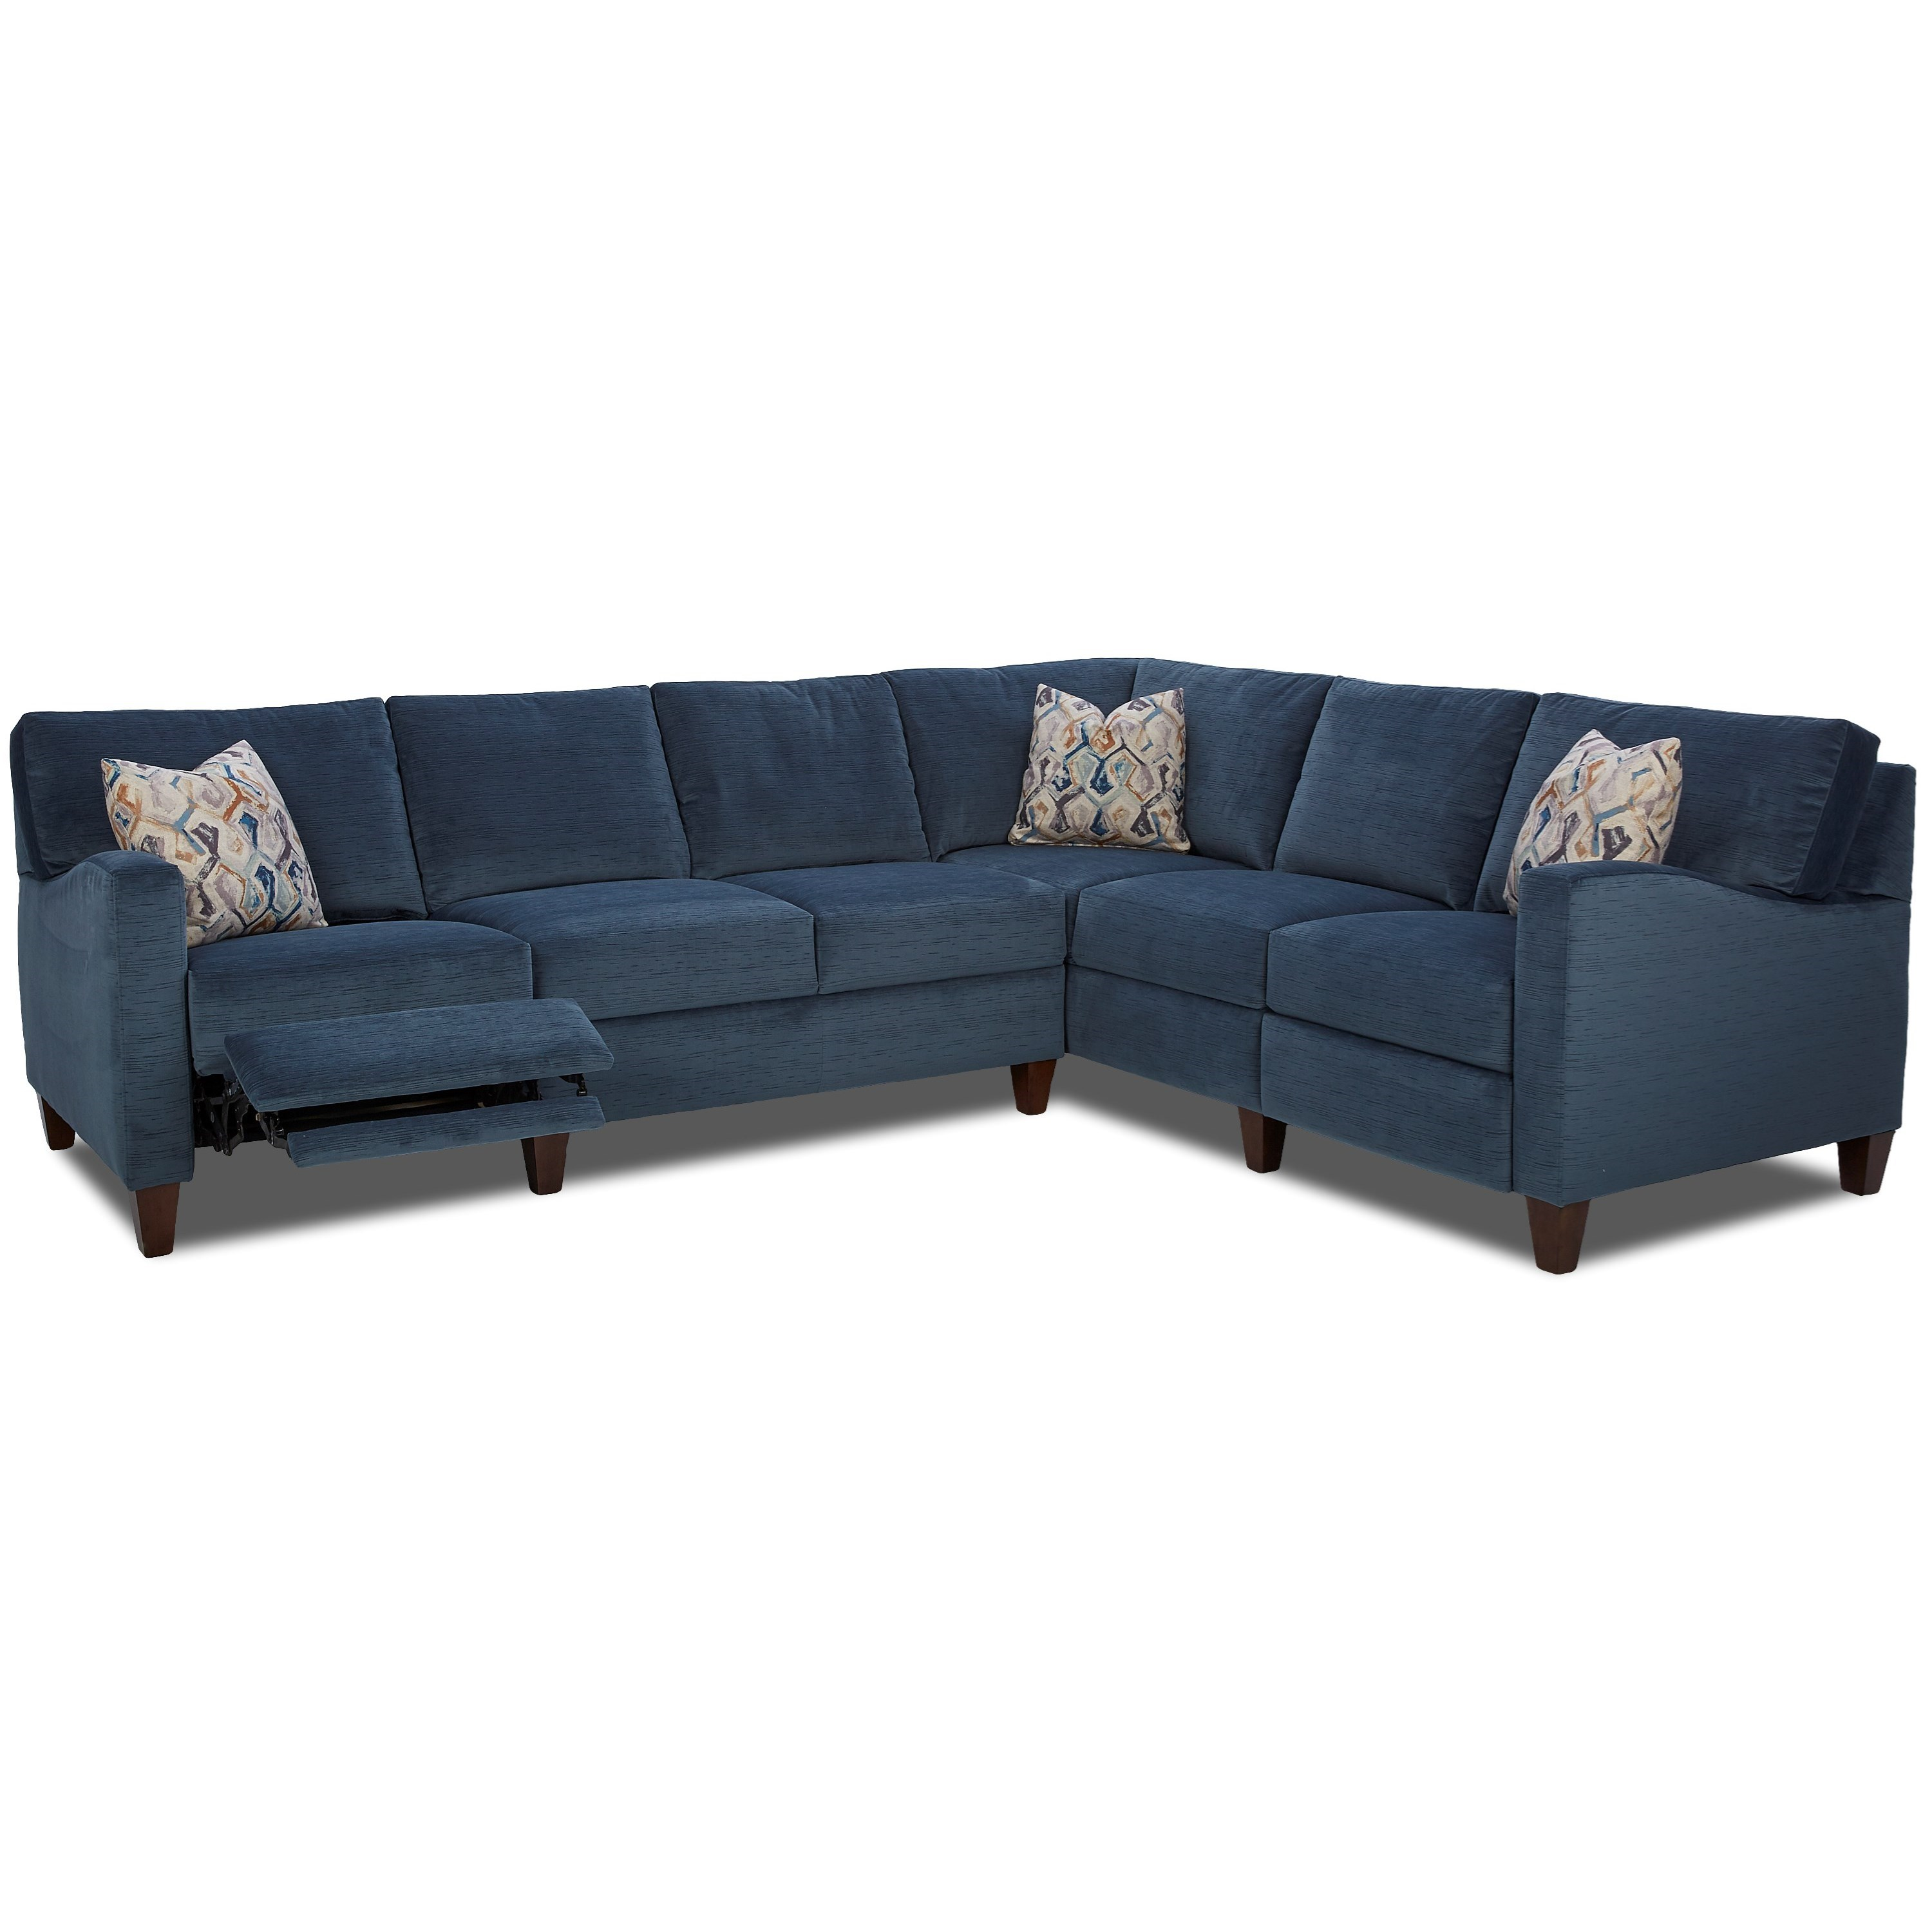 Colleen Hybrid Reclining Sectional w/ RAF Corn Sofa by Klaussner at Northeast Factory Direct